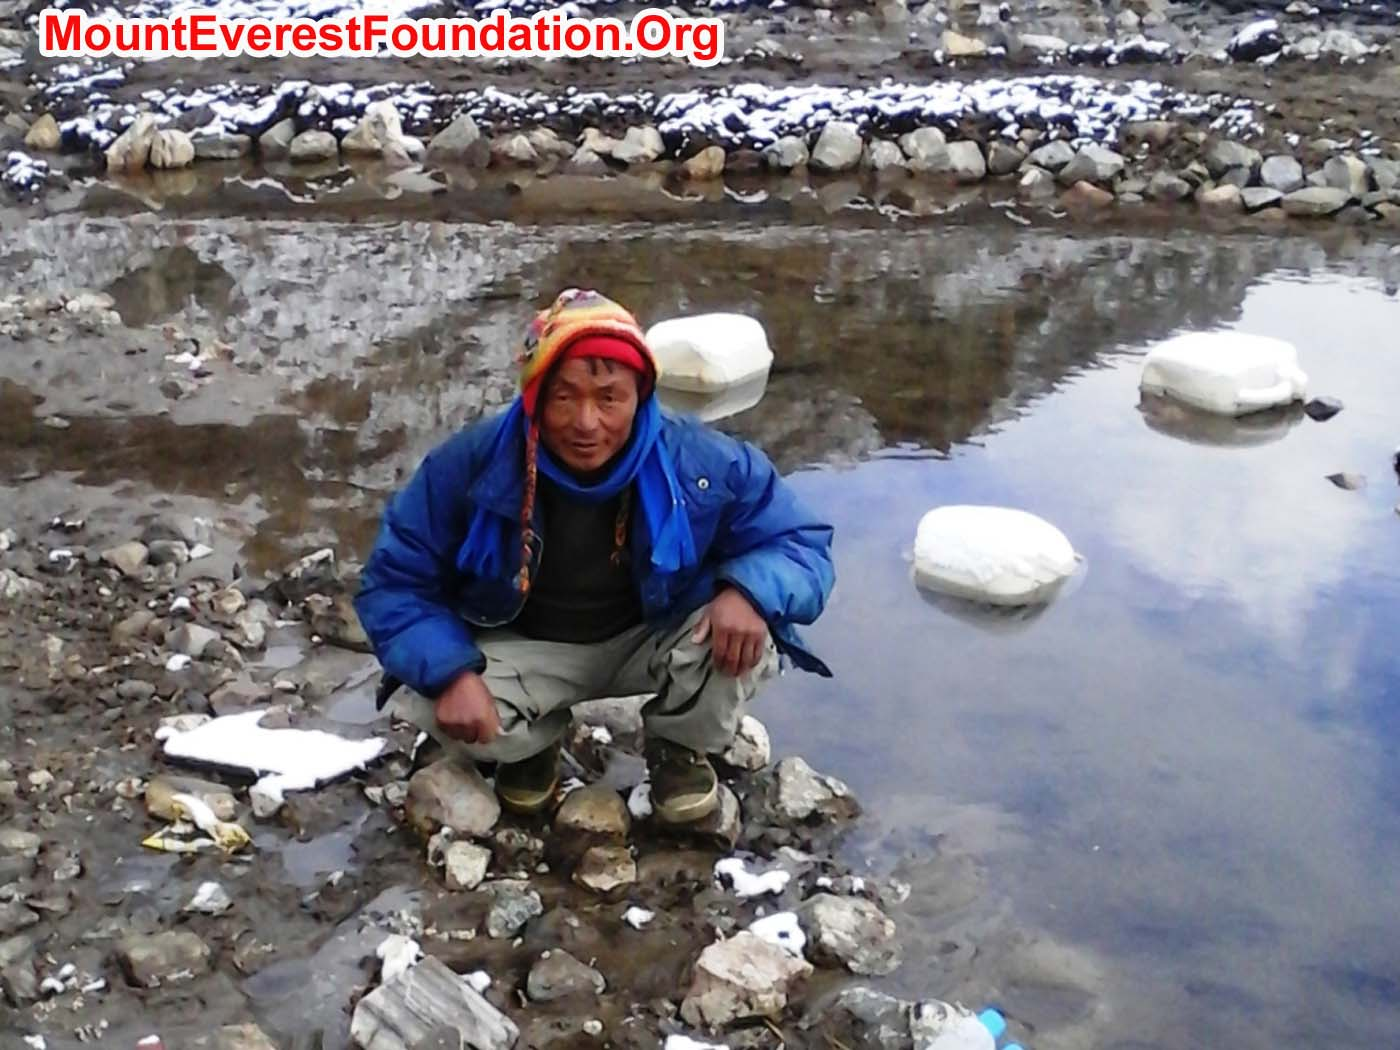 Rukman Sunwar collects a water sample from Gorak Shep Lake. Rubbish floats in the pool behind him